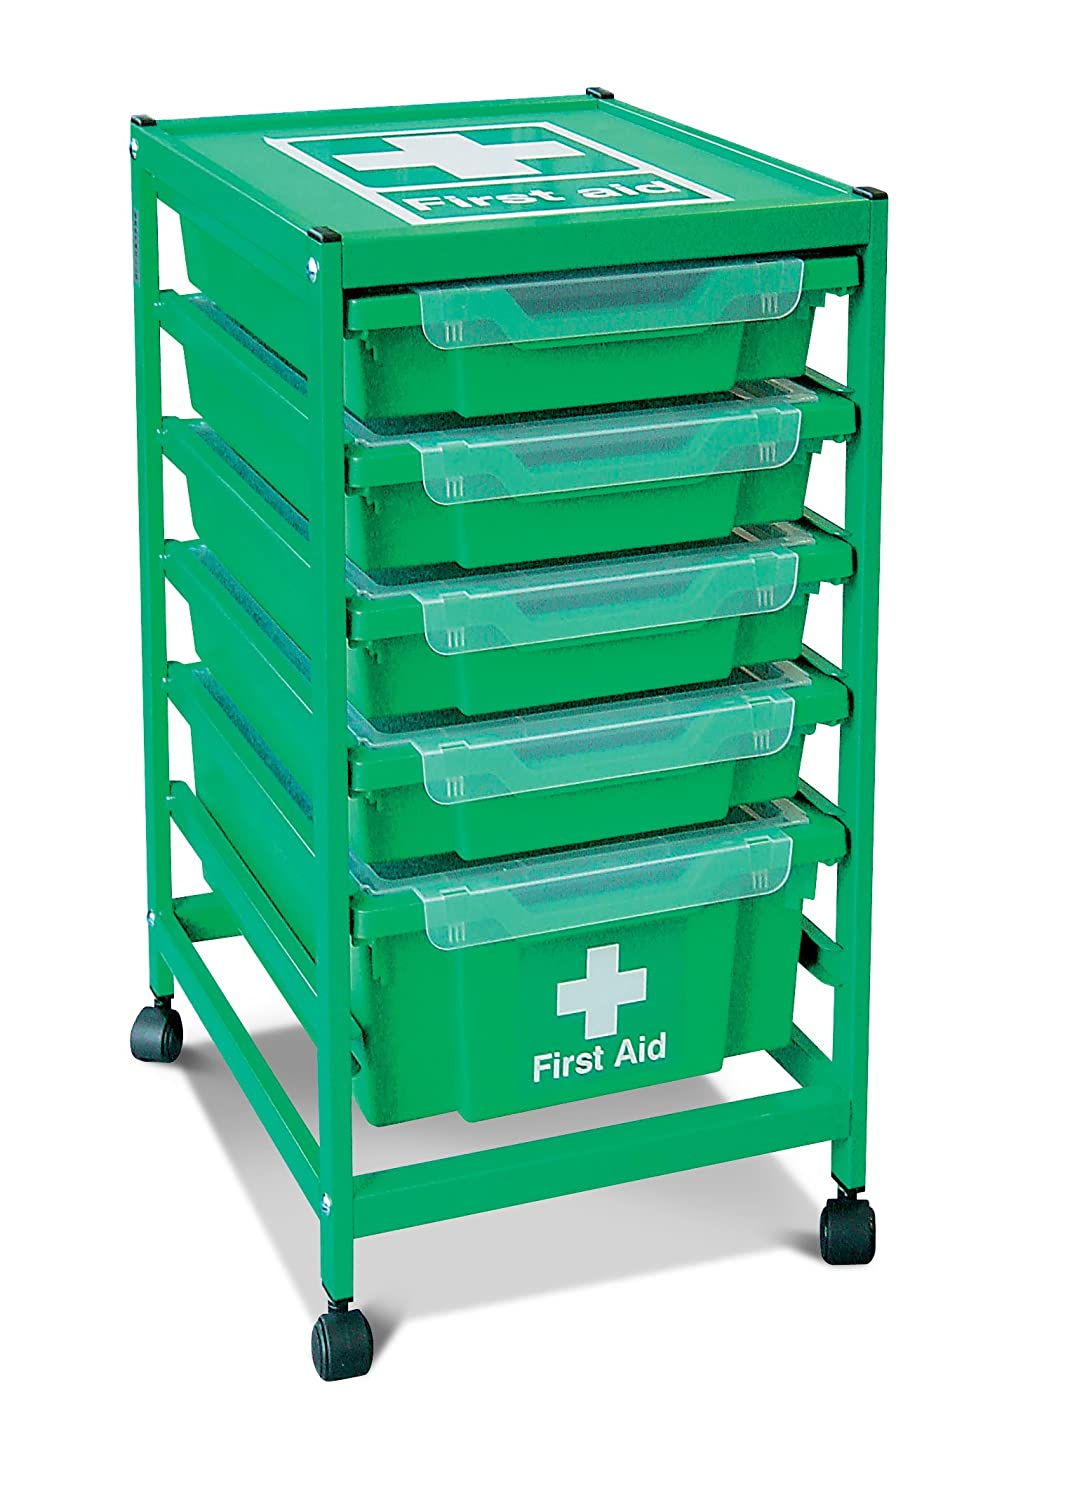 First Aid Trolley, Grass Green Gratnells Ltd 401 FA